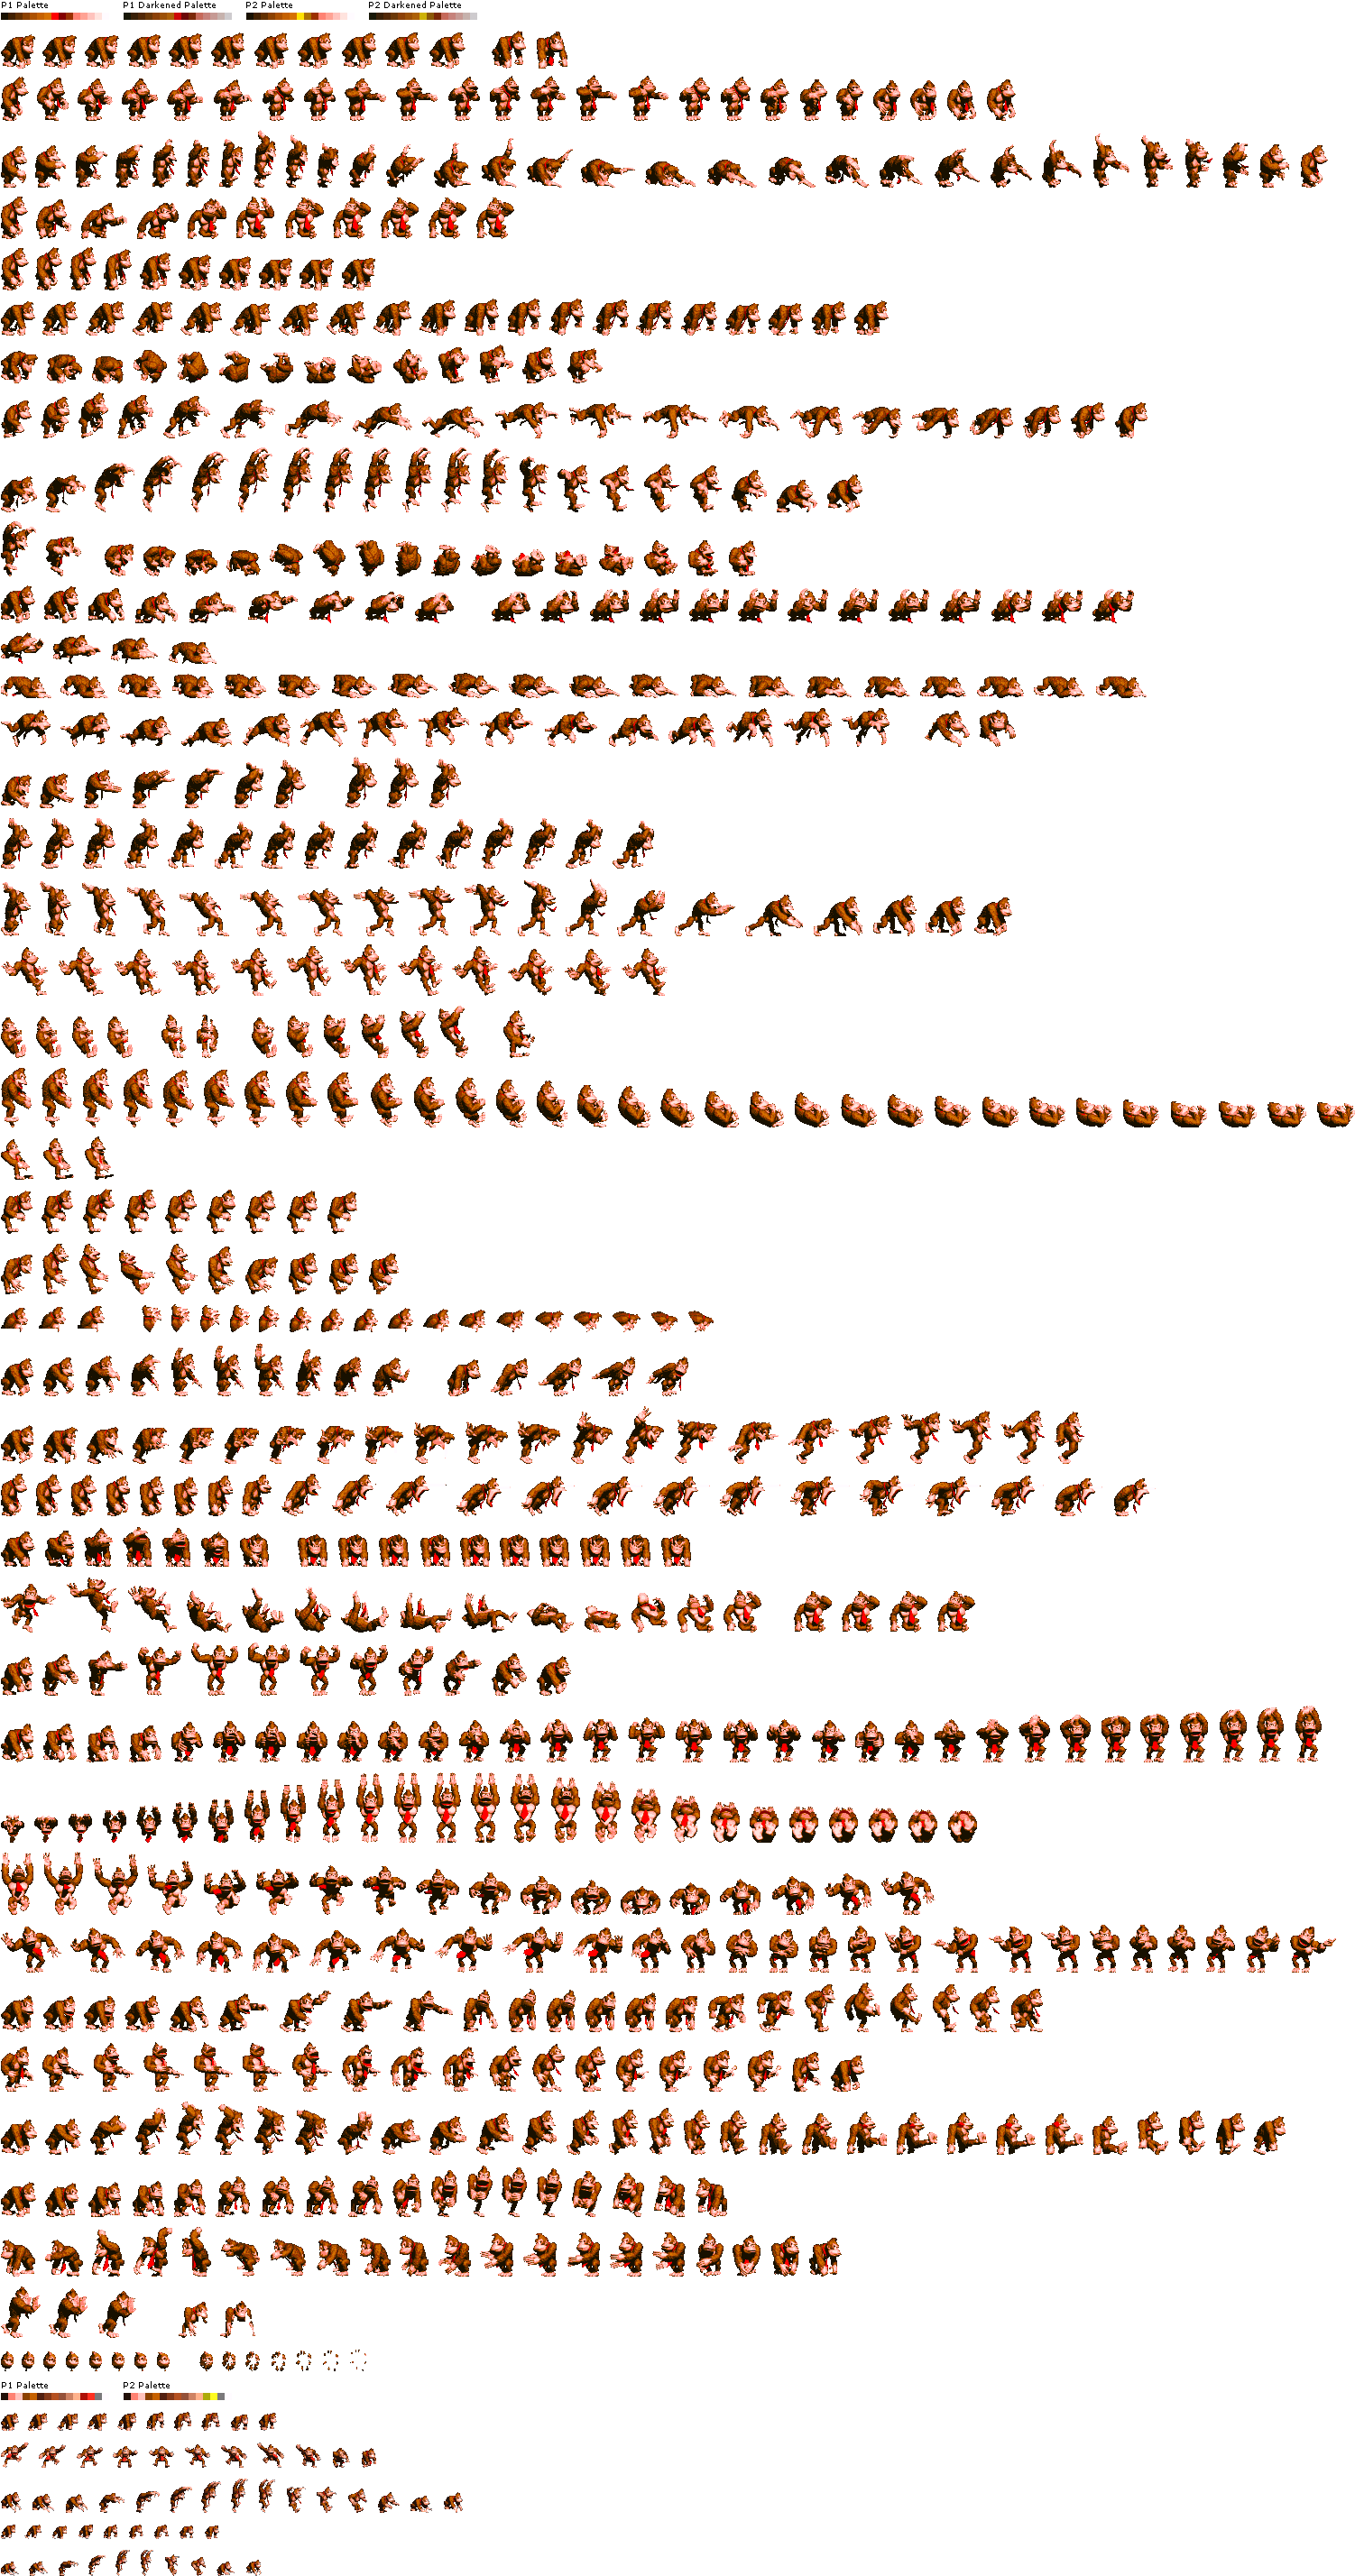 Download Donkey Kong Sprite Sheet Tan Png Image With No Background